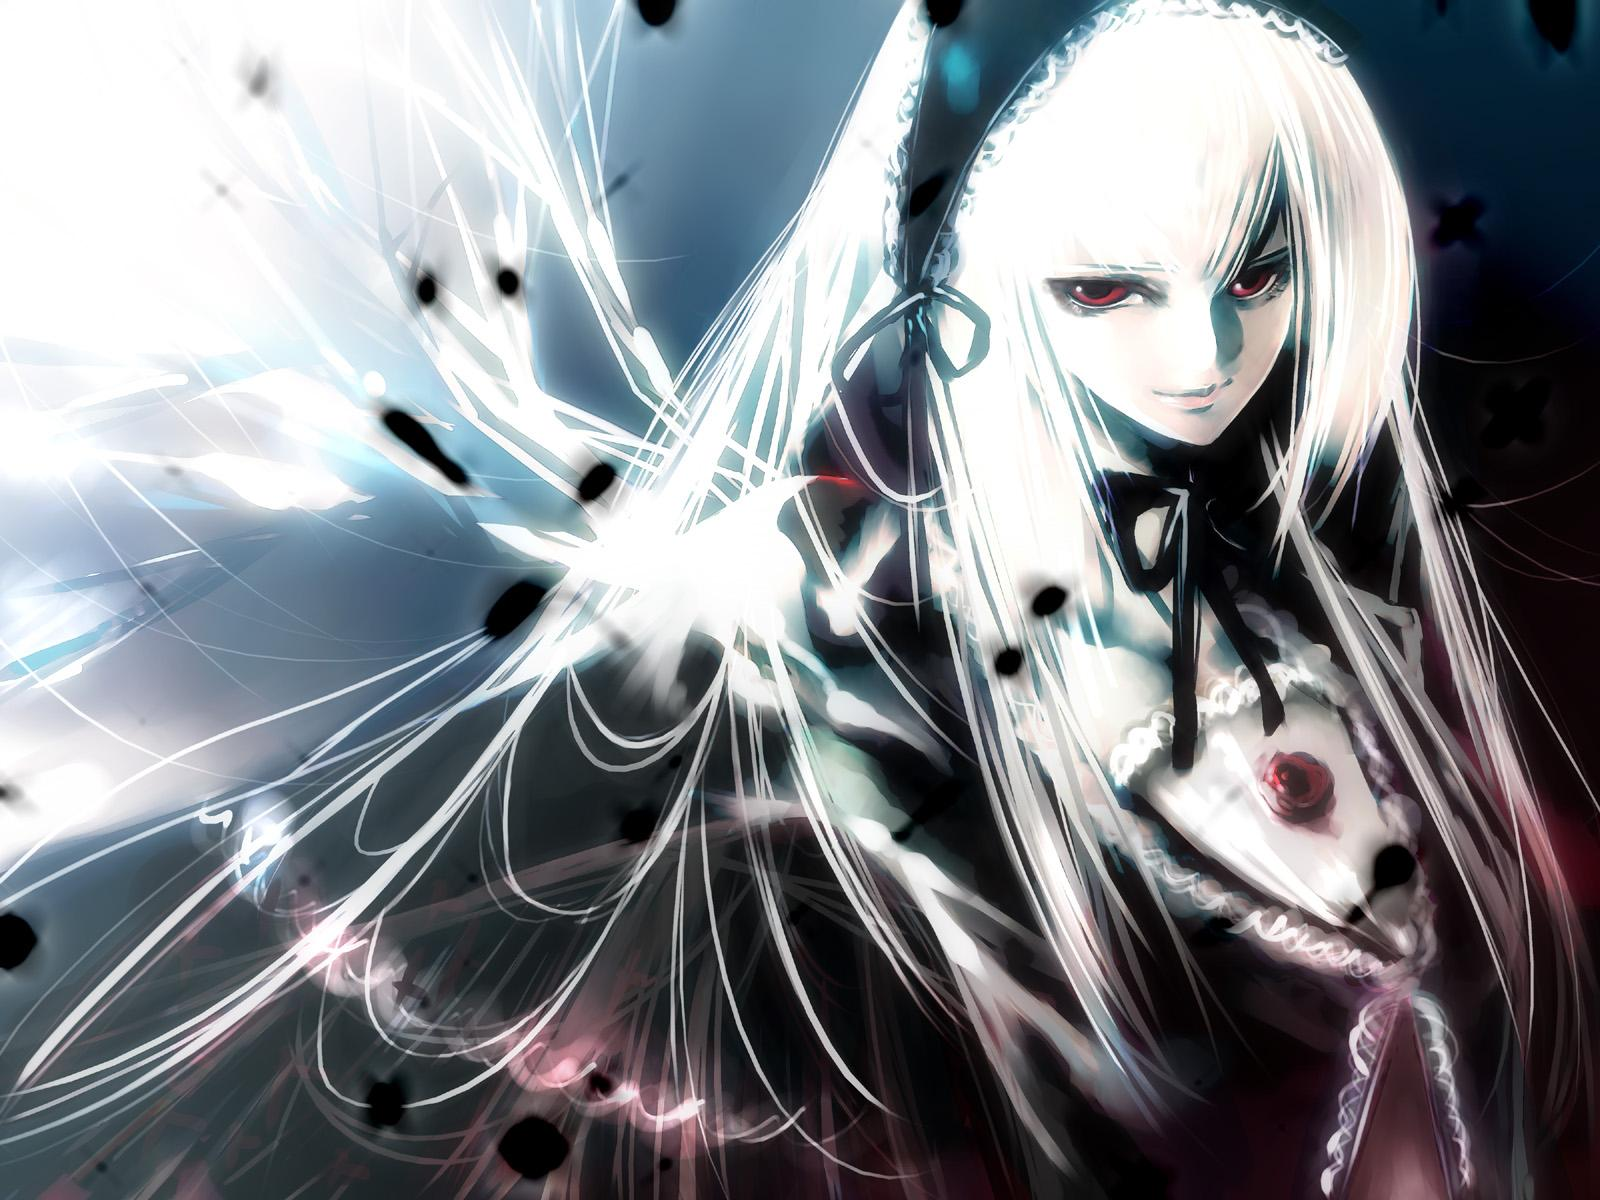 Best Coolest Anime HD Wallpapers - Wallpaper Cave